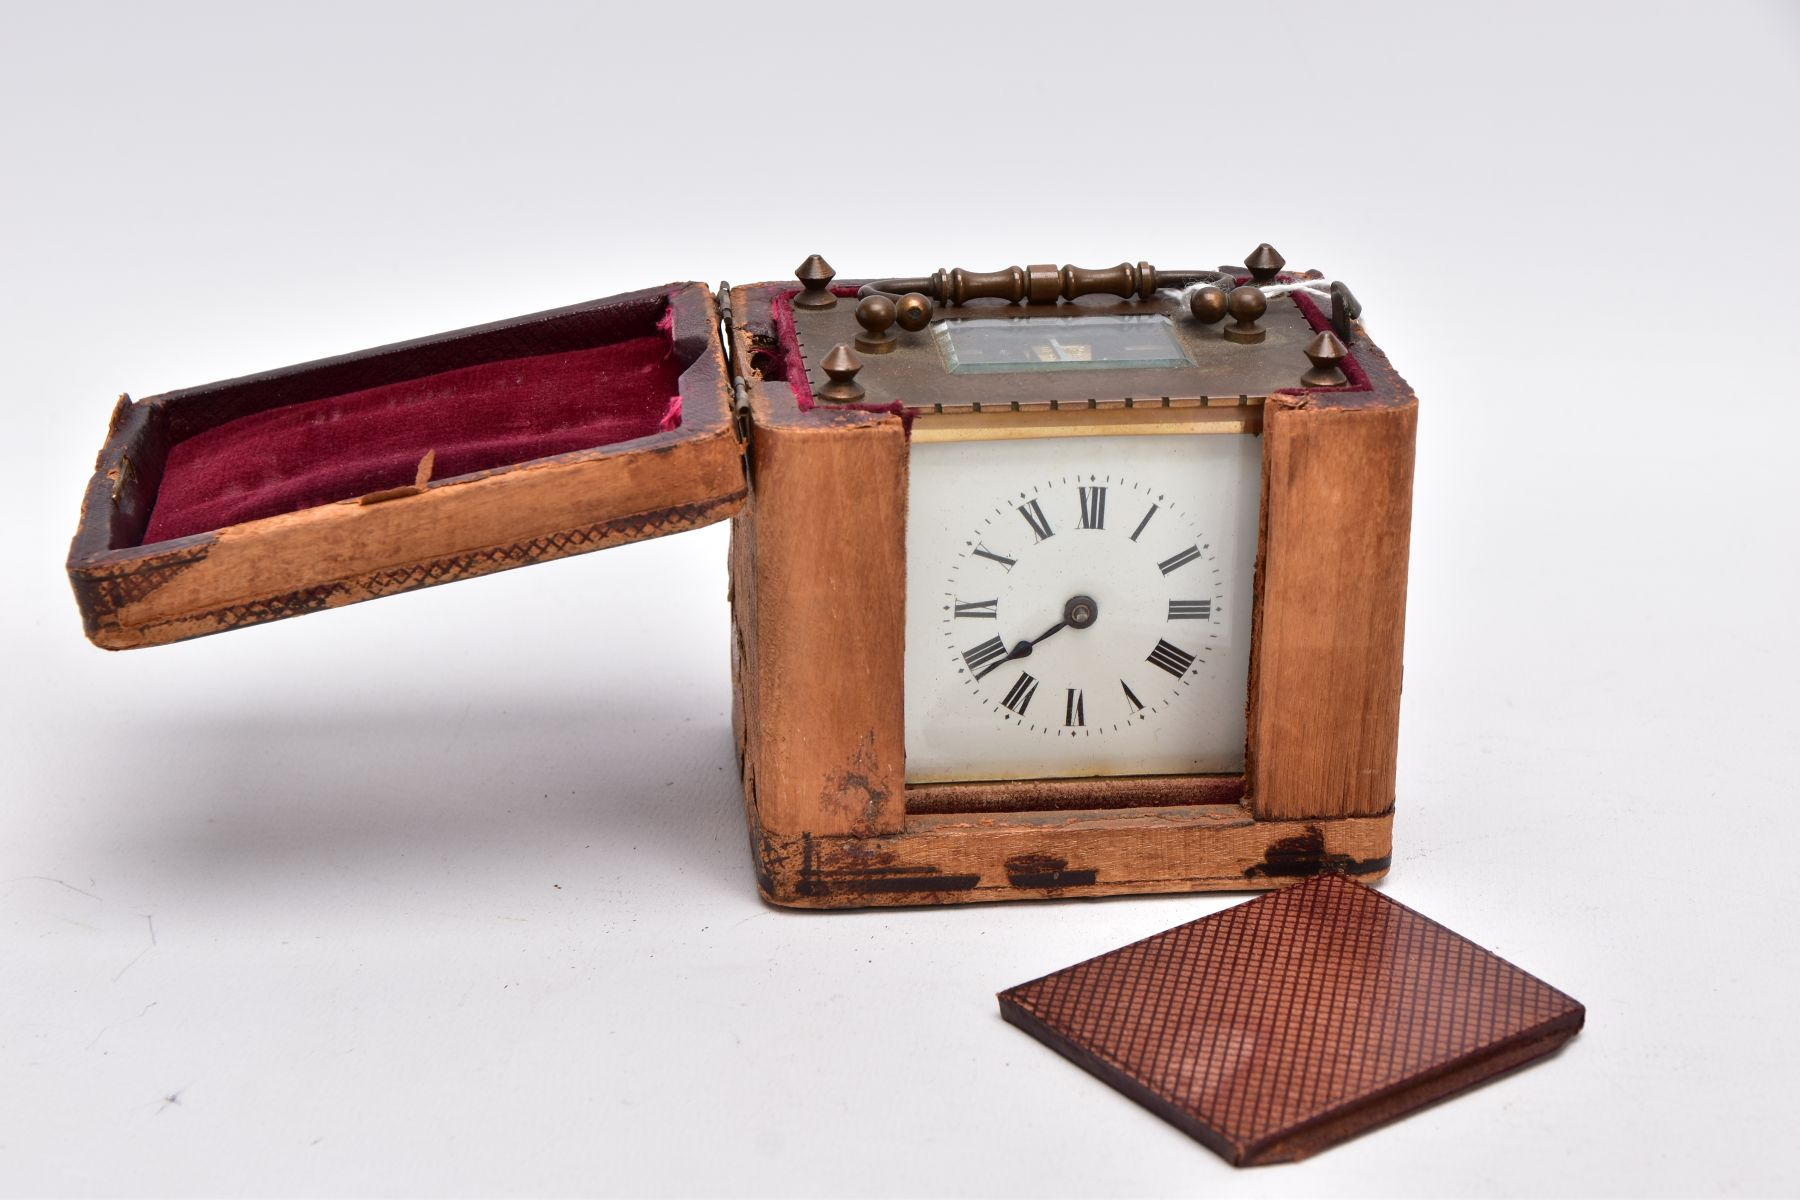 A SMALL LEATHER CASED BRASS TRAVEL CARRIAGE CLOCK, glass panels, white dial with roman numerals, - Image 7 of 8